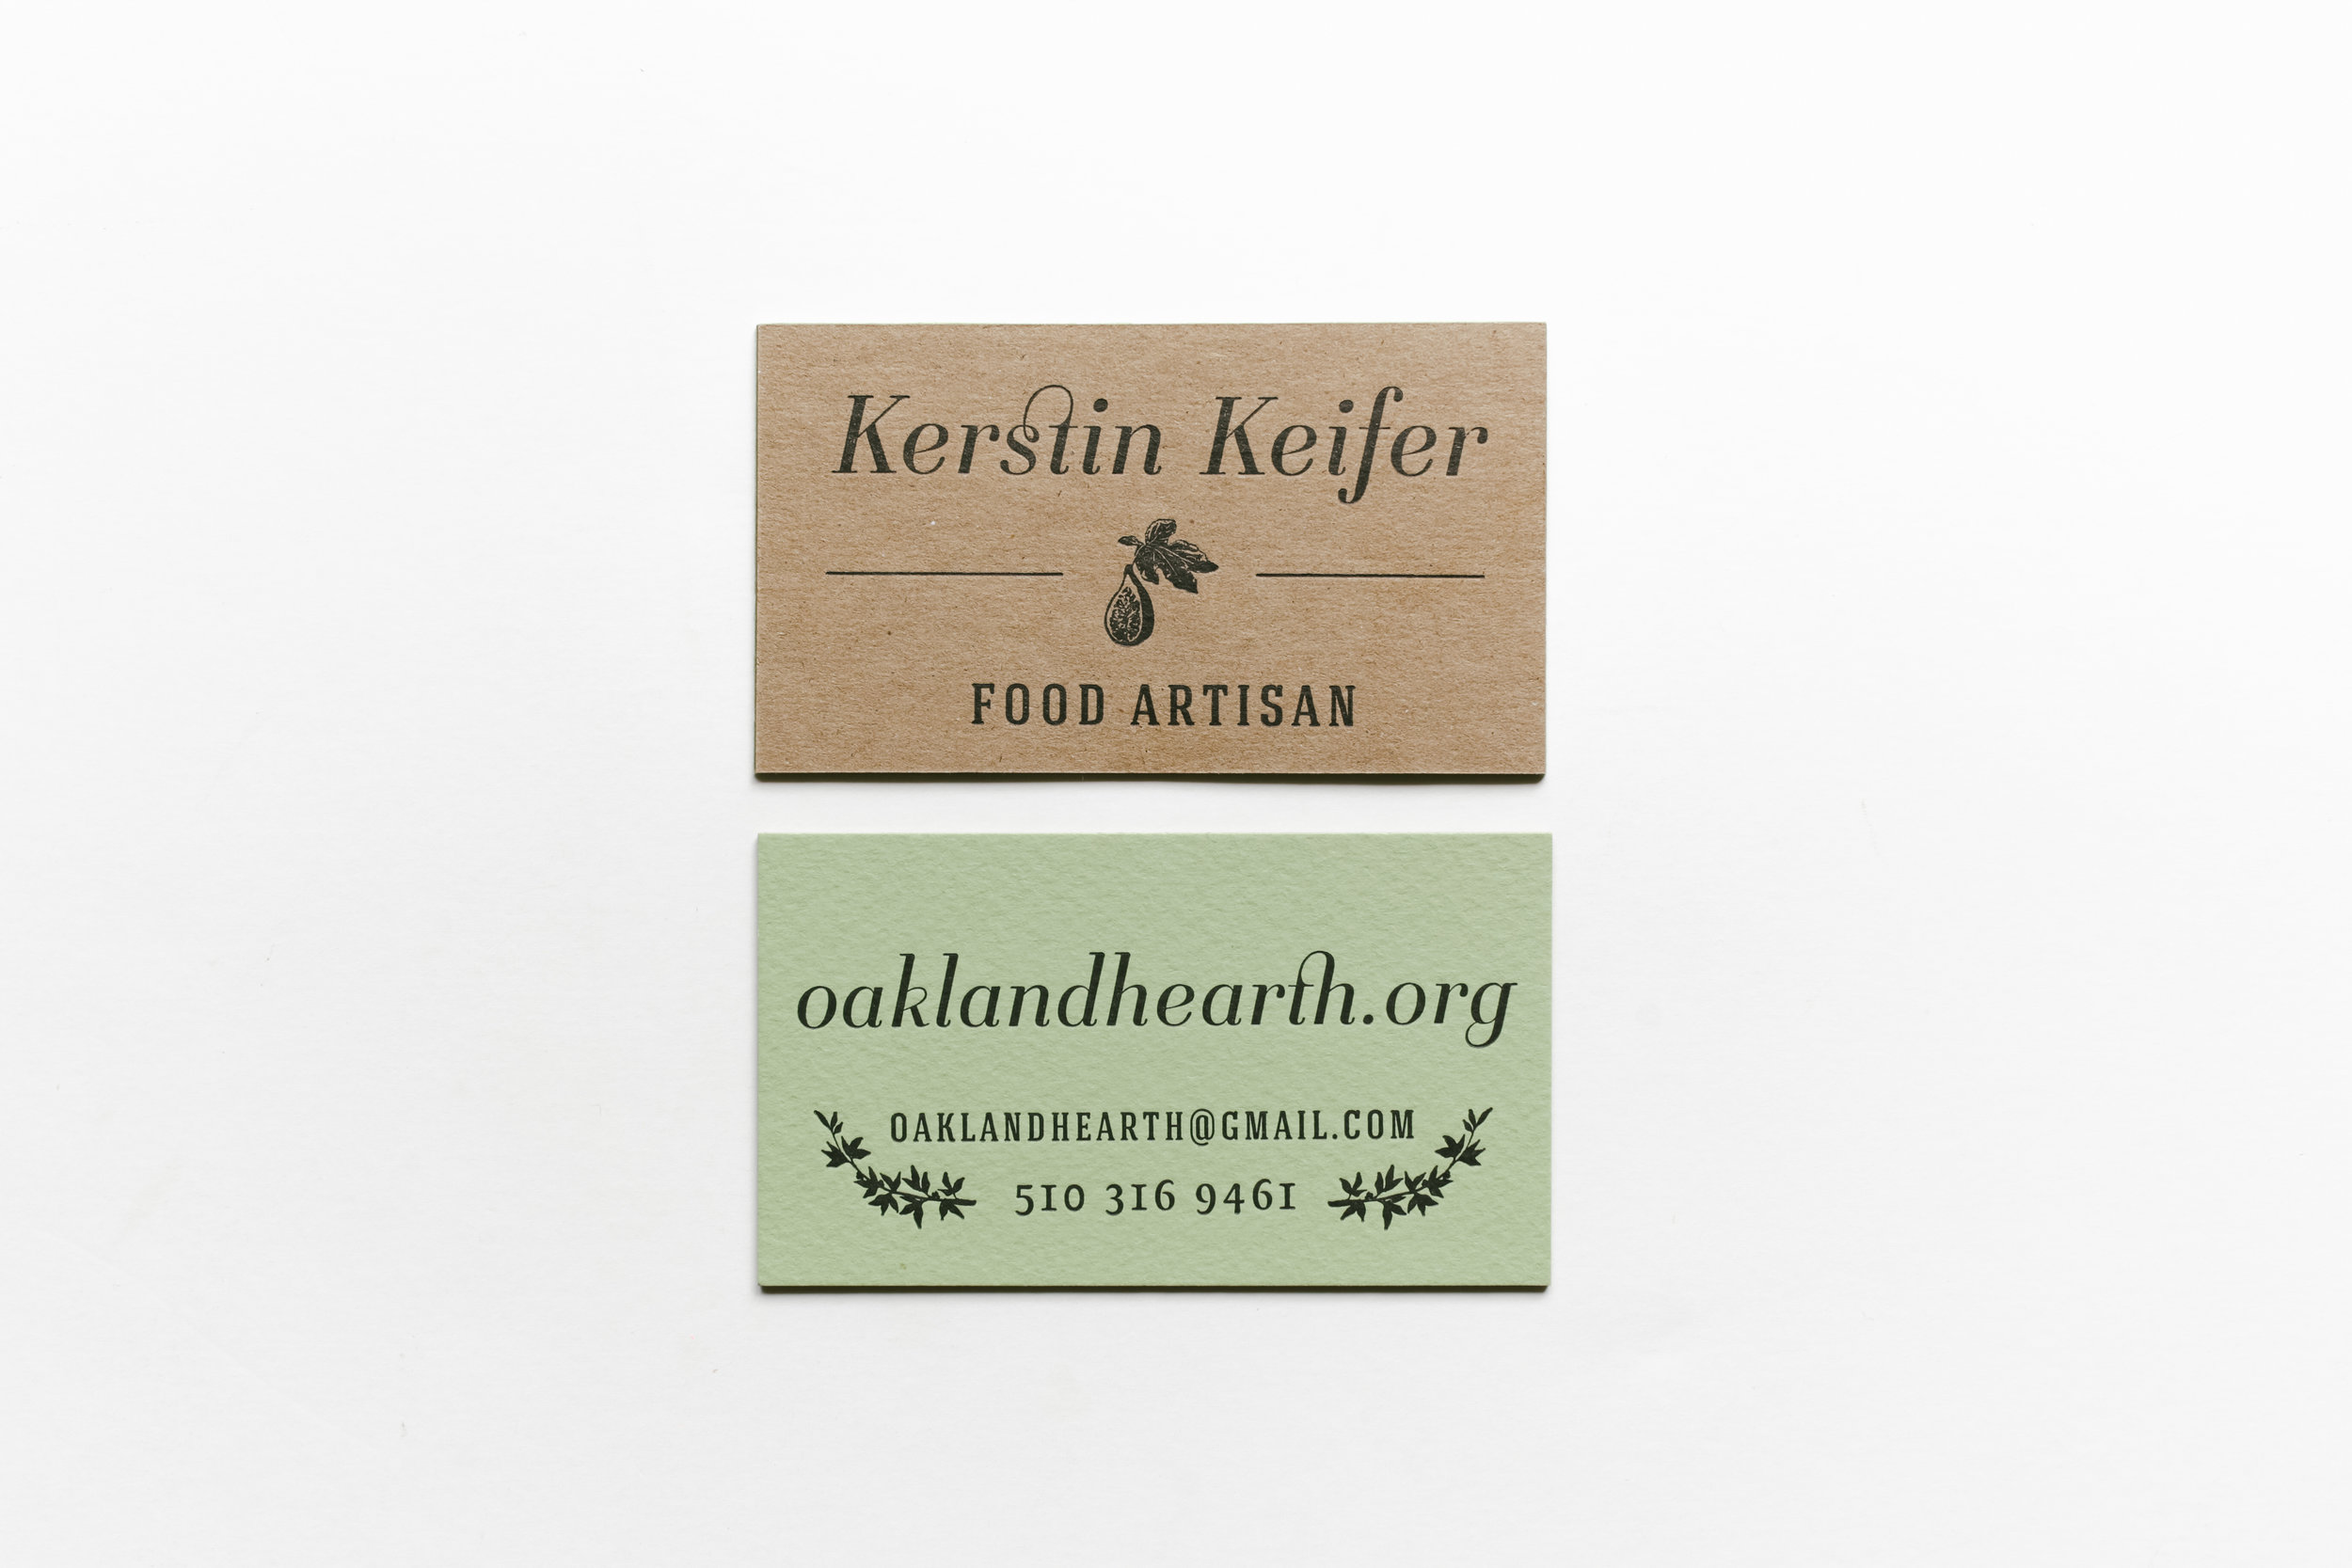 Original letterpress double-sided business card with kraft chipboard and sage green paper.